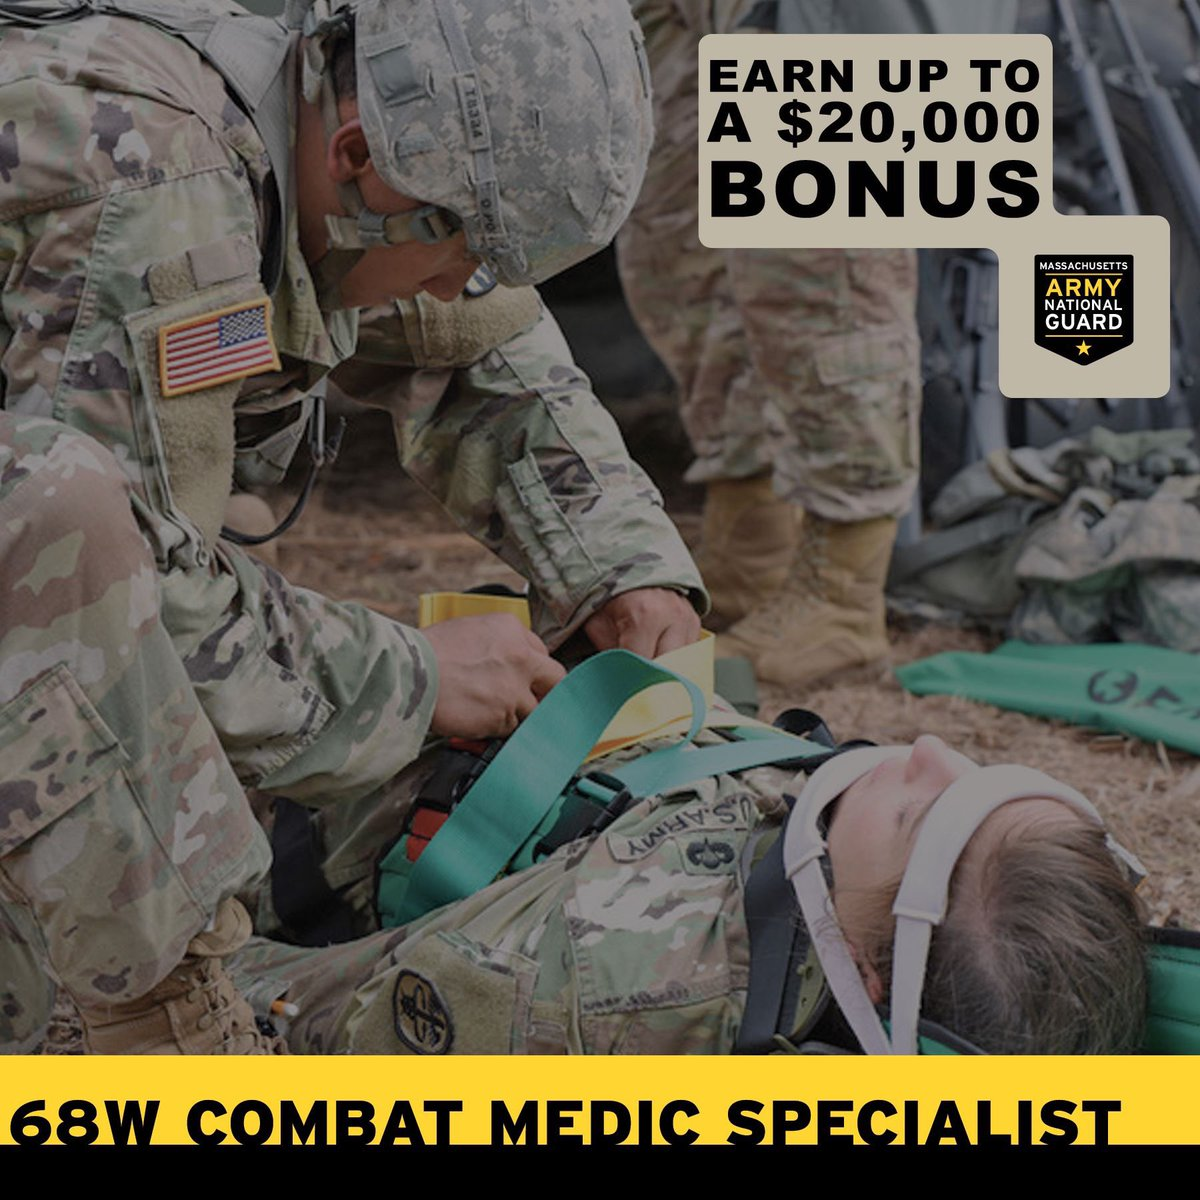 Our 68Ws are primarily responsible for providing emergency medical treatment, limited primary care, and health protection and evacuation from a point of injury or illness. During times of local emergency, they activate to assist civilians and Soldiers to stay healthy and safe.pic.twitter.com/7qD4ihT3TG